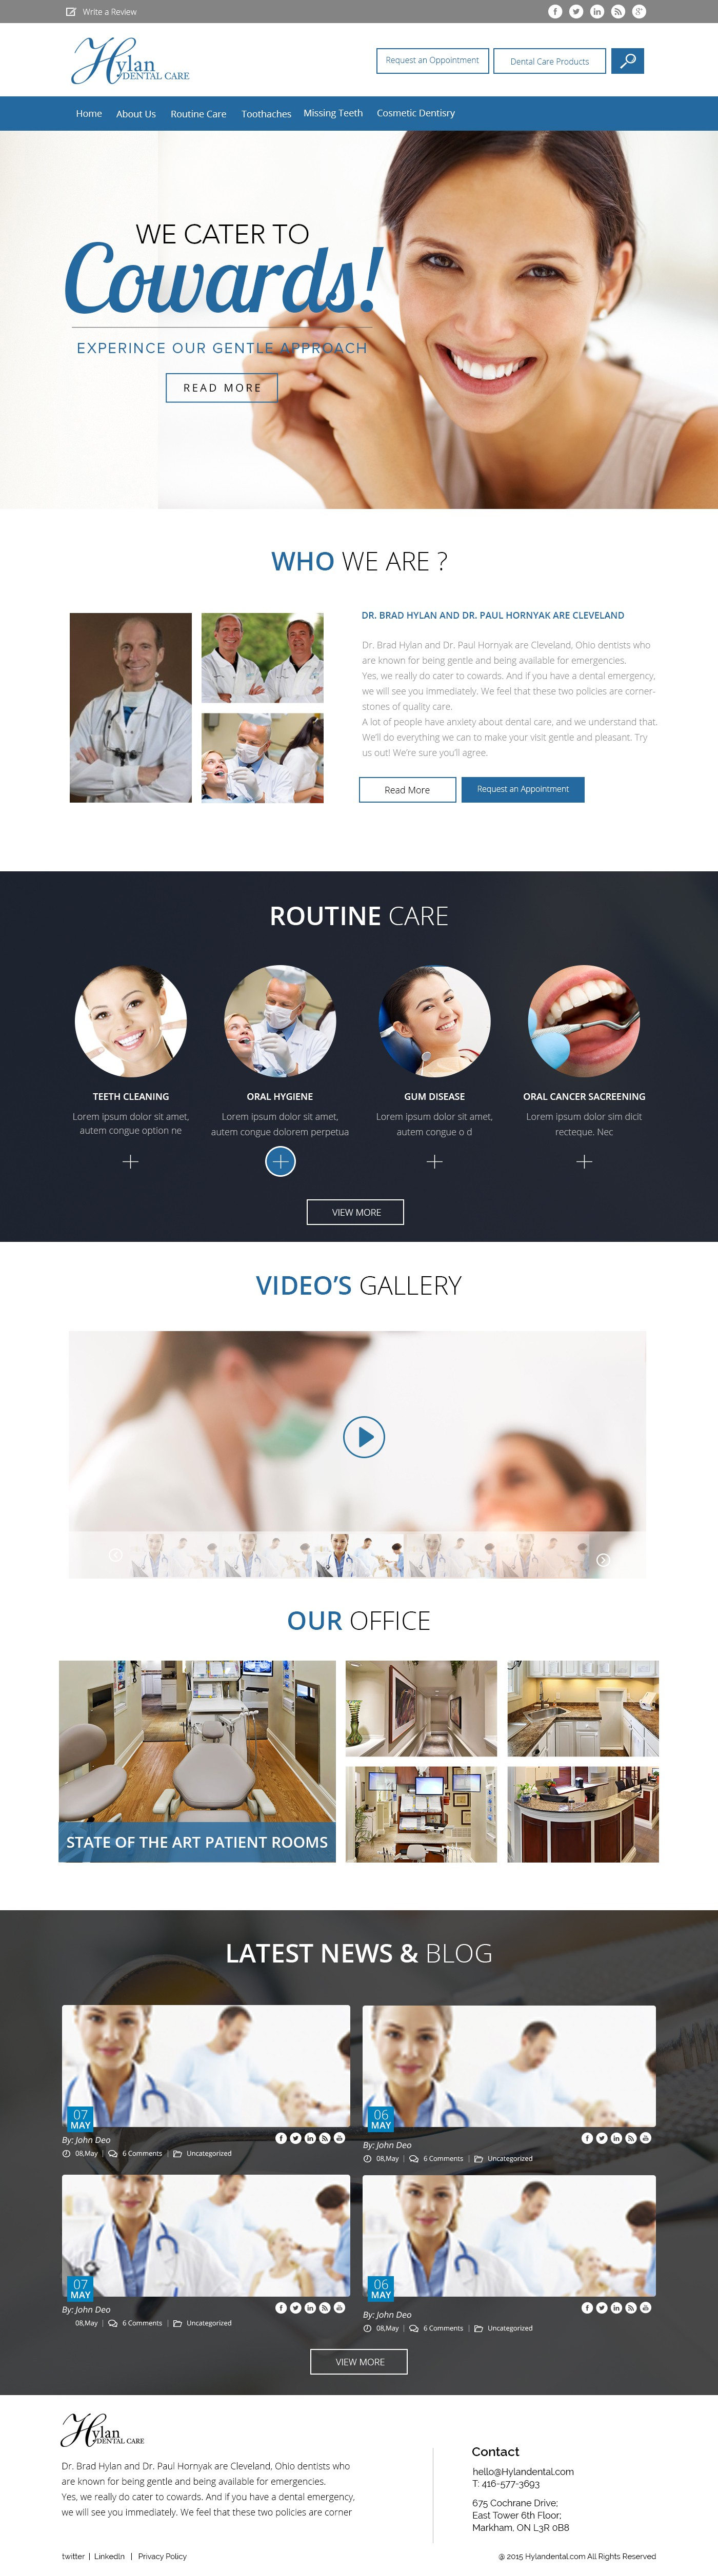 Create a modern, warm, and intuitive website for an outstanding dental practice